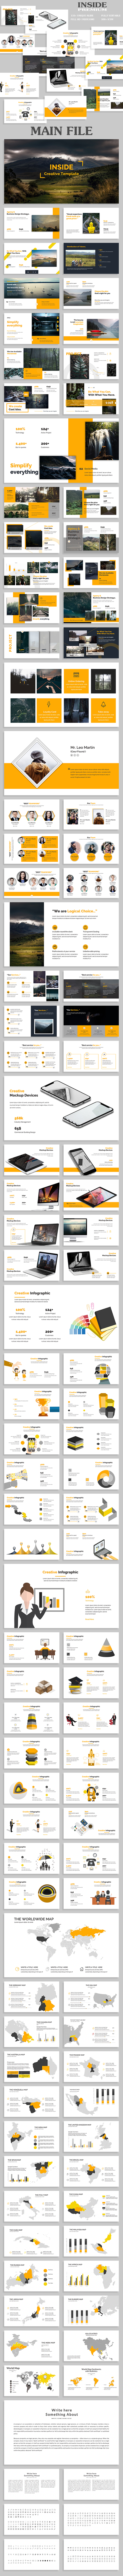 Inside Premium PowerPoint Template - Creative PowerPoint Templates